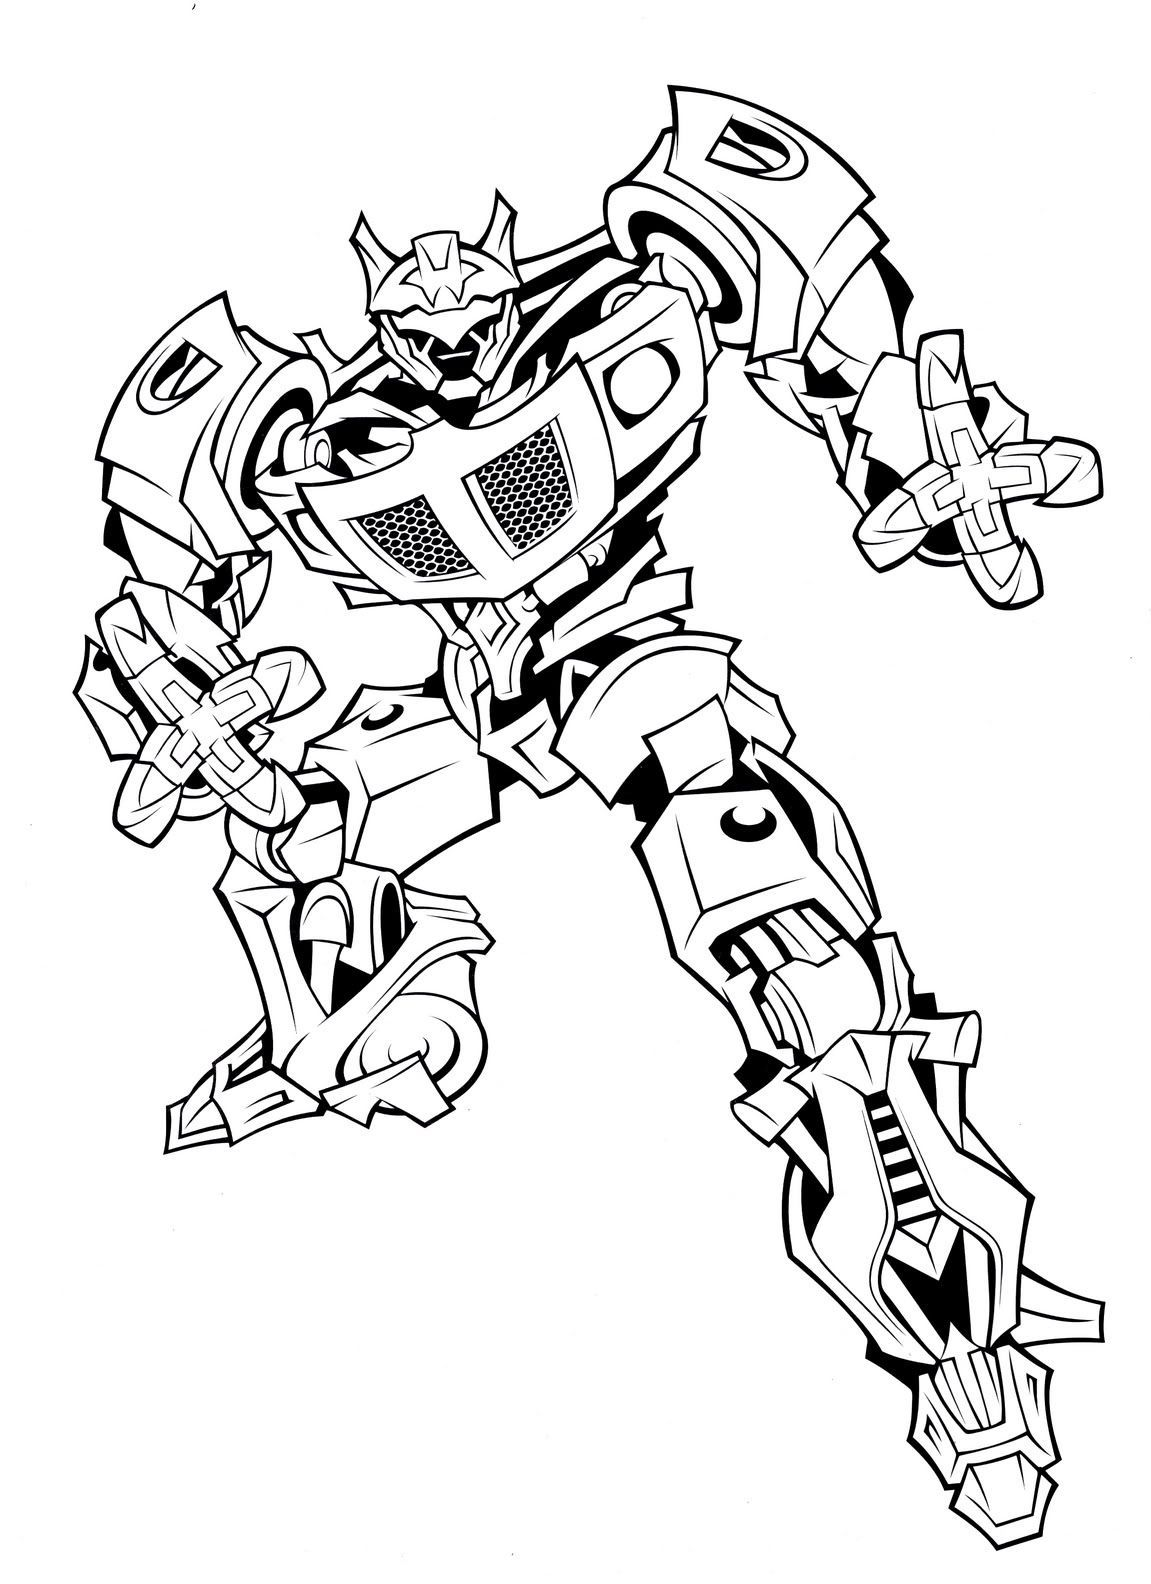 Free Printable Transformers Coloring Pages For Kids Transformers Coloring Pages Bee Coloring Pages Coloring Books